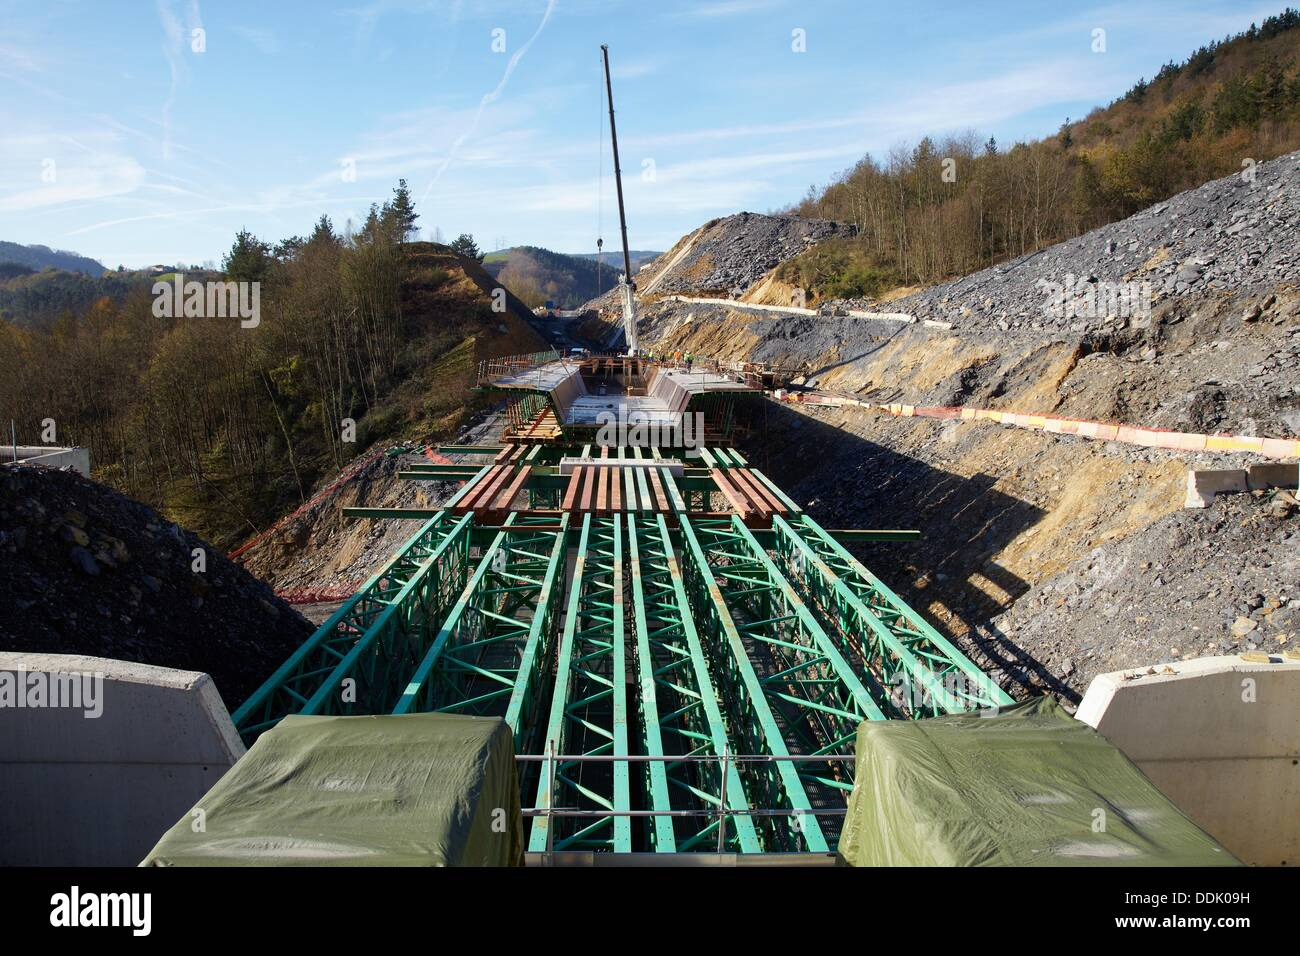 Construction of viaduct, Works of the new railway platform in the